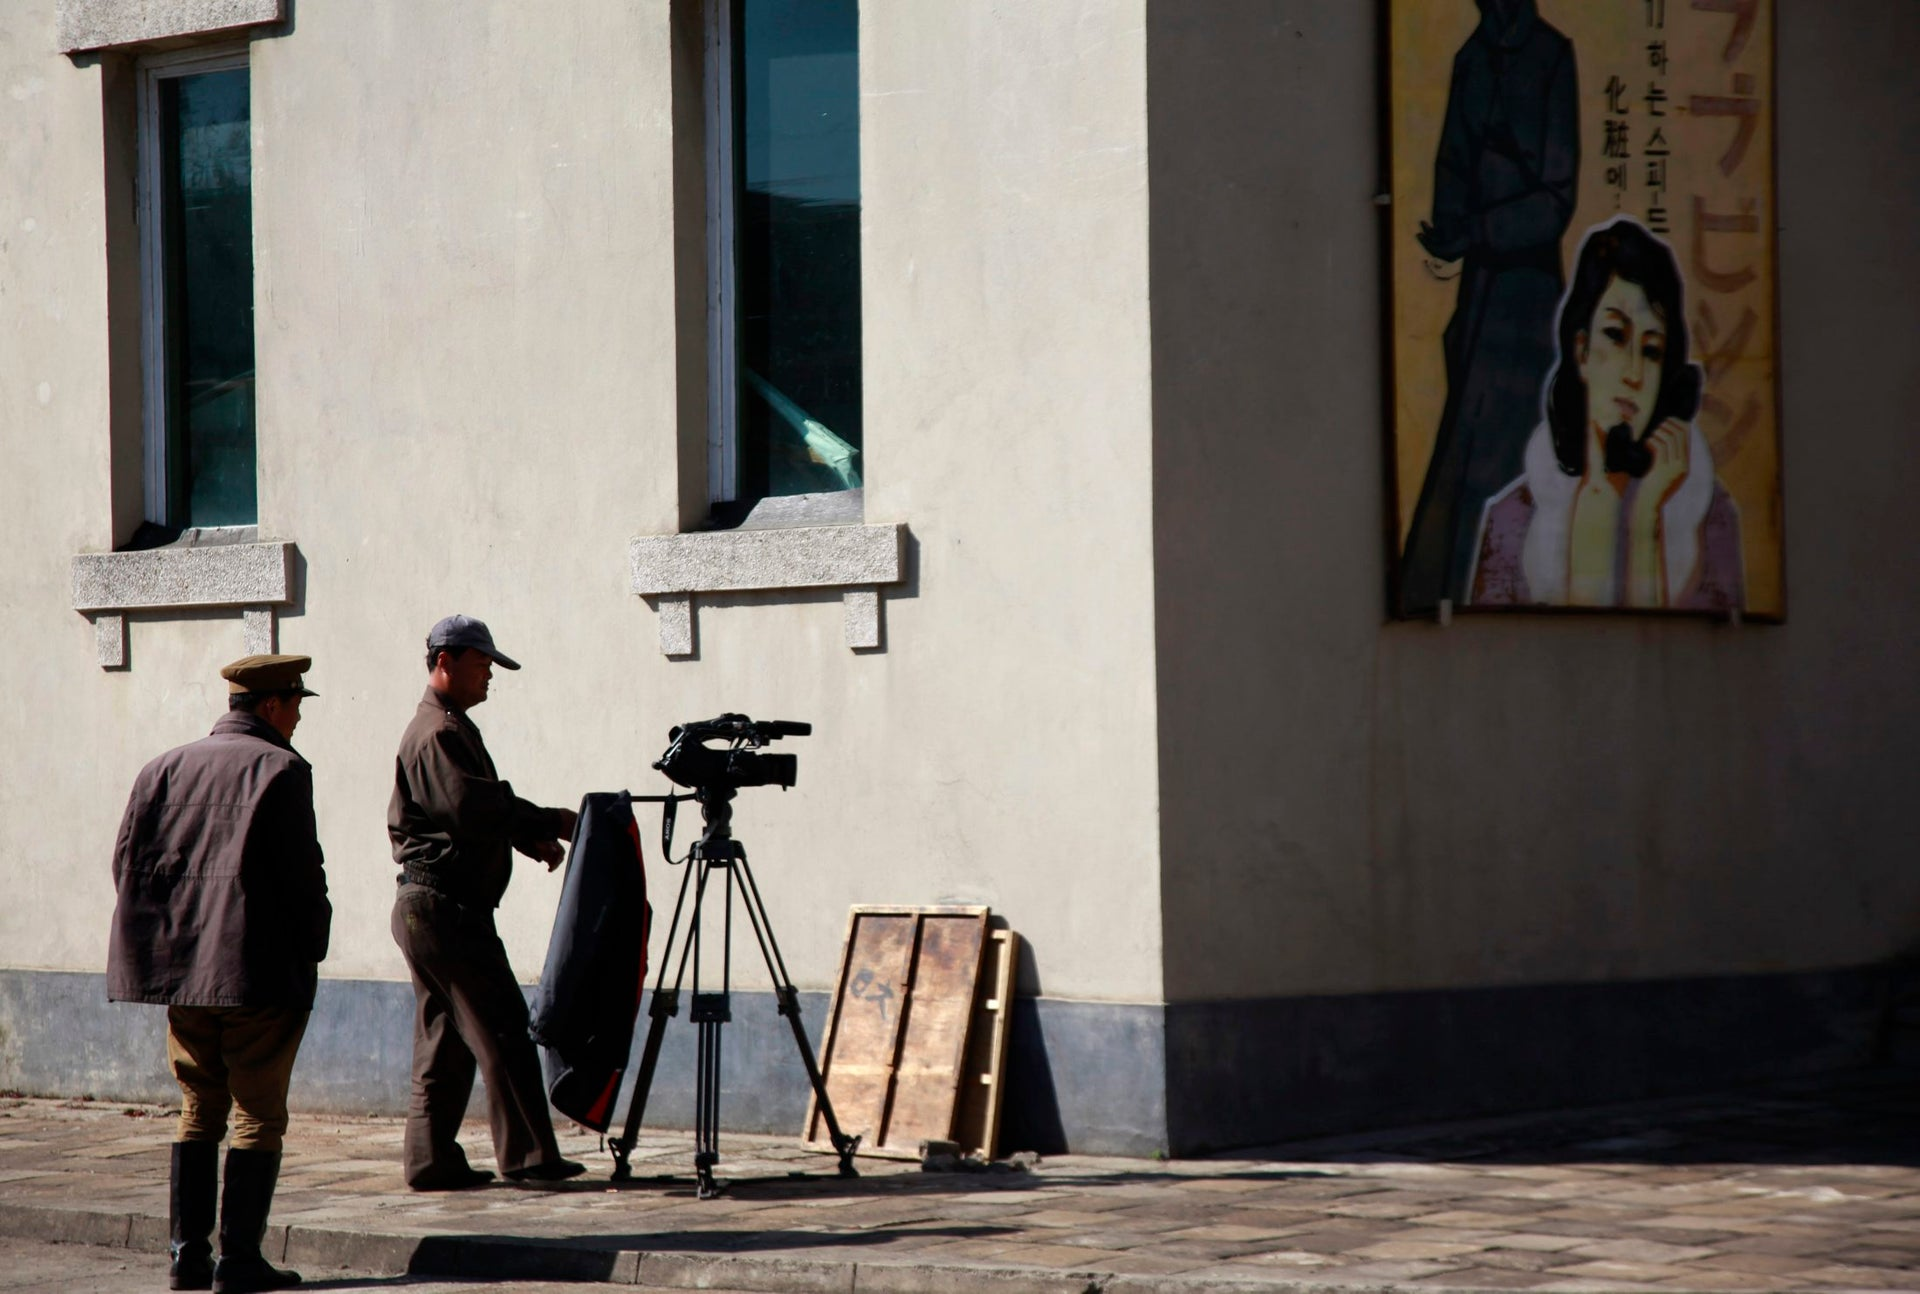 A North Korean man prepares for filming at a film studio in Pyongyang, North Korea